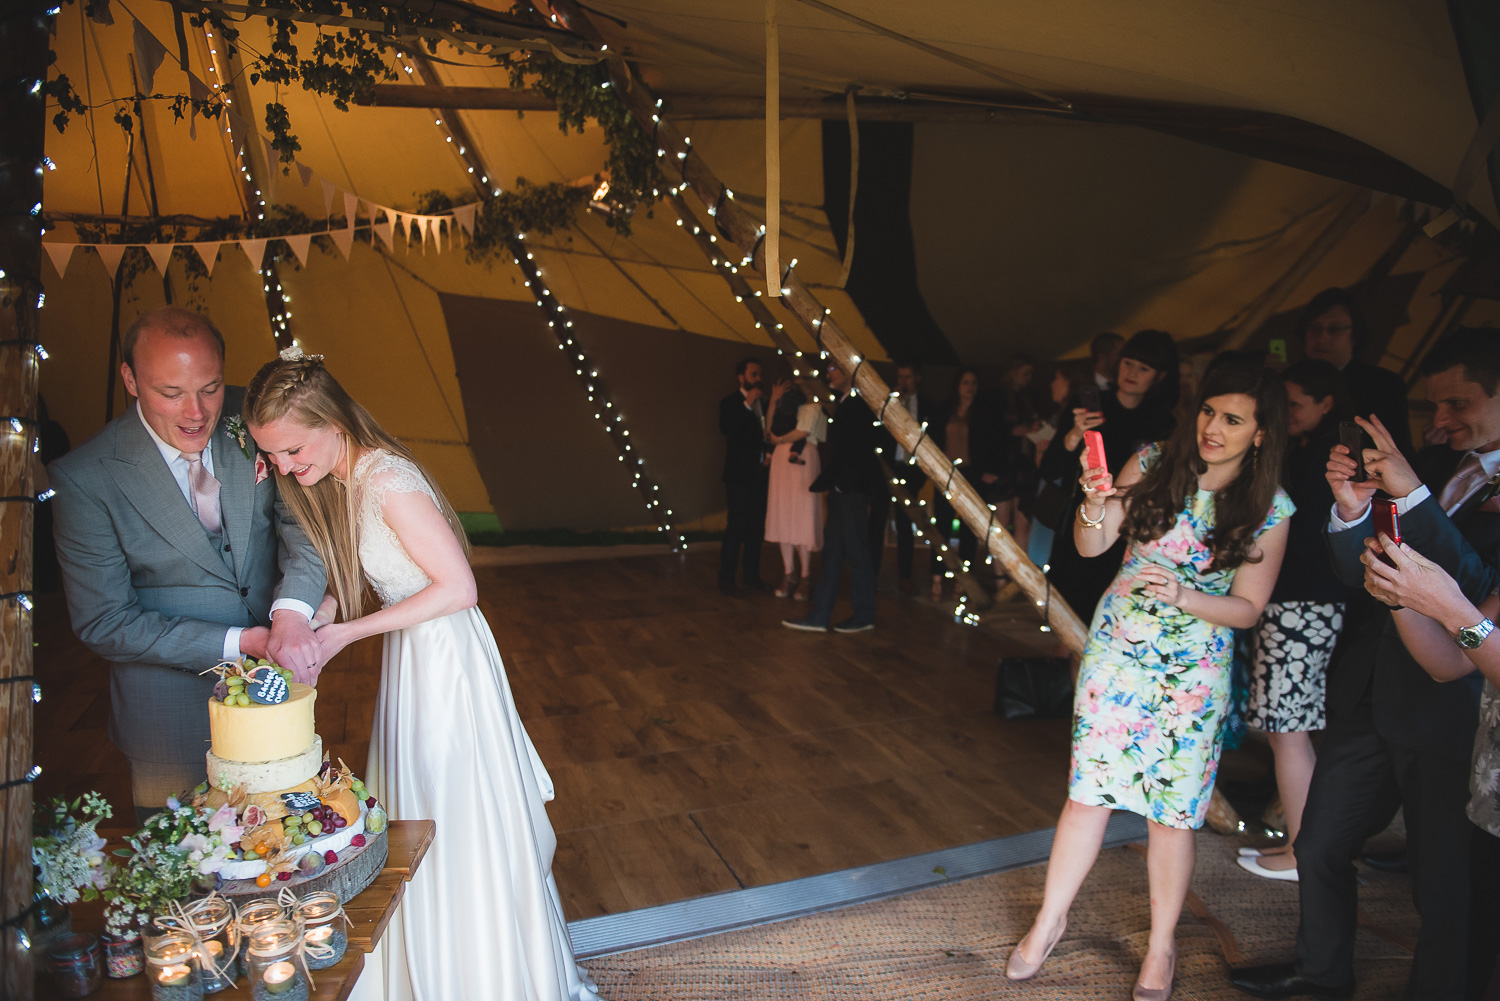 wedding-photographer-sussex-tipi-115.jpg